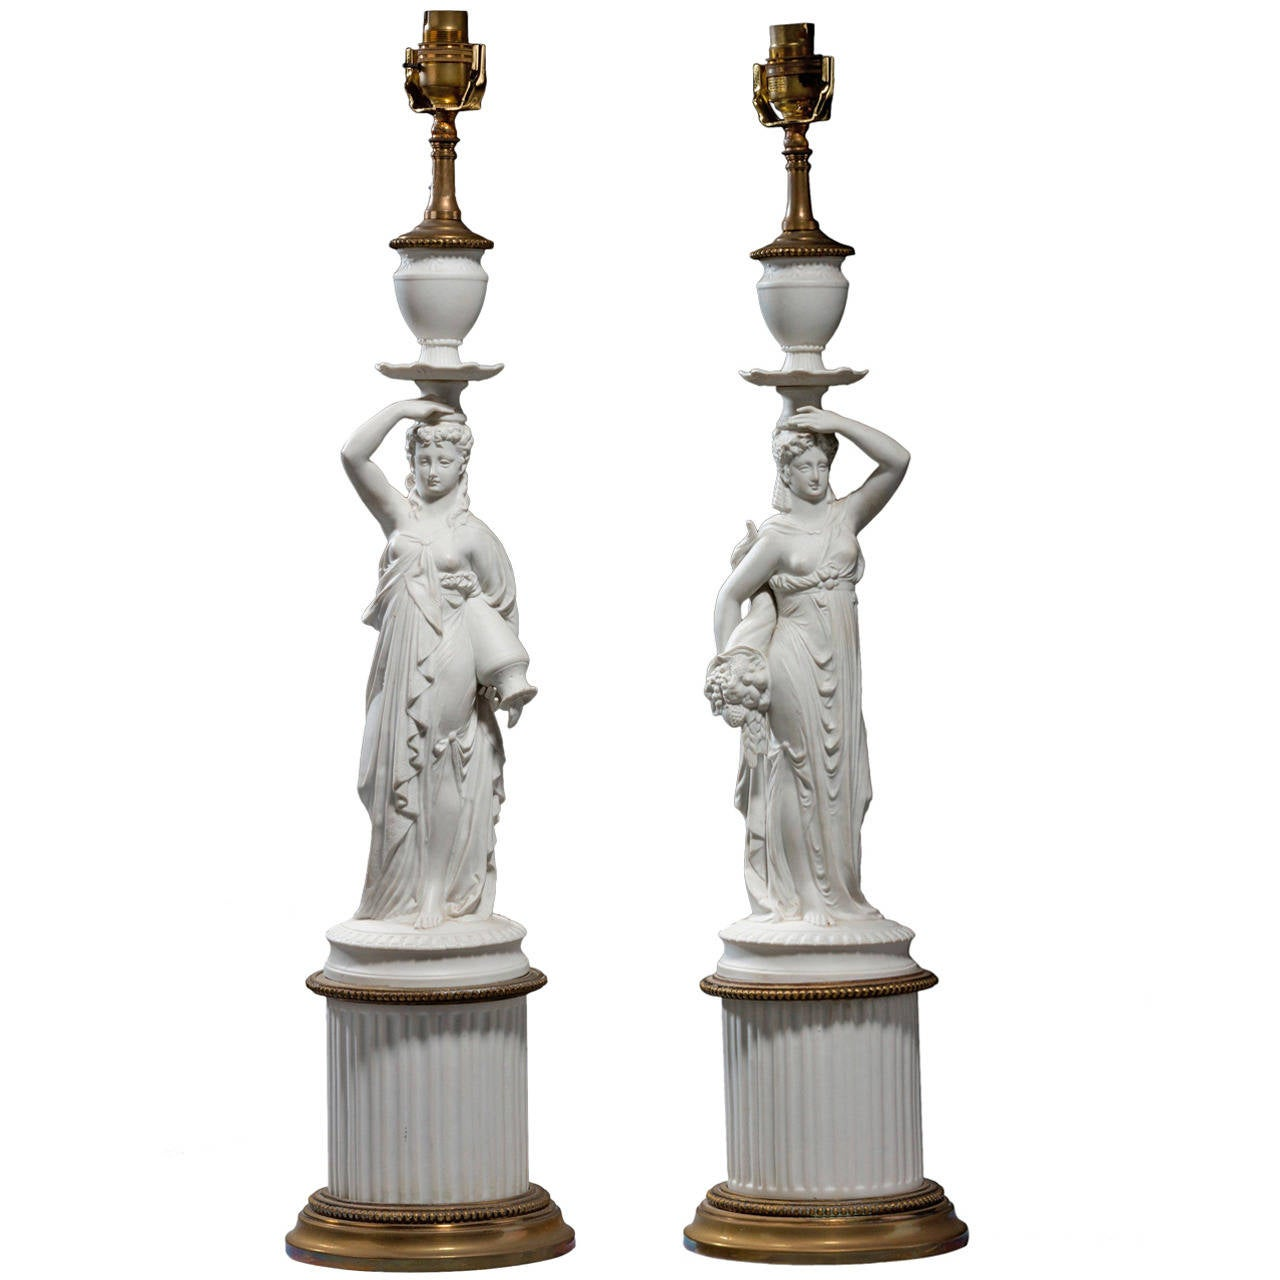 Pair of early 20th century Neoclassical Lamps